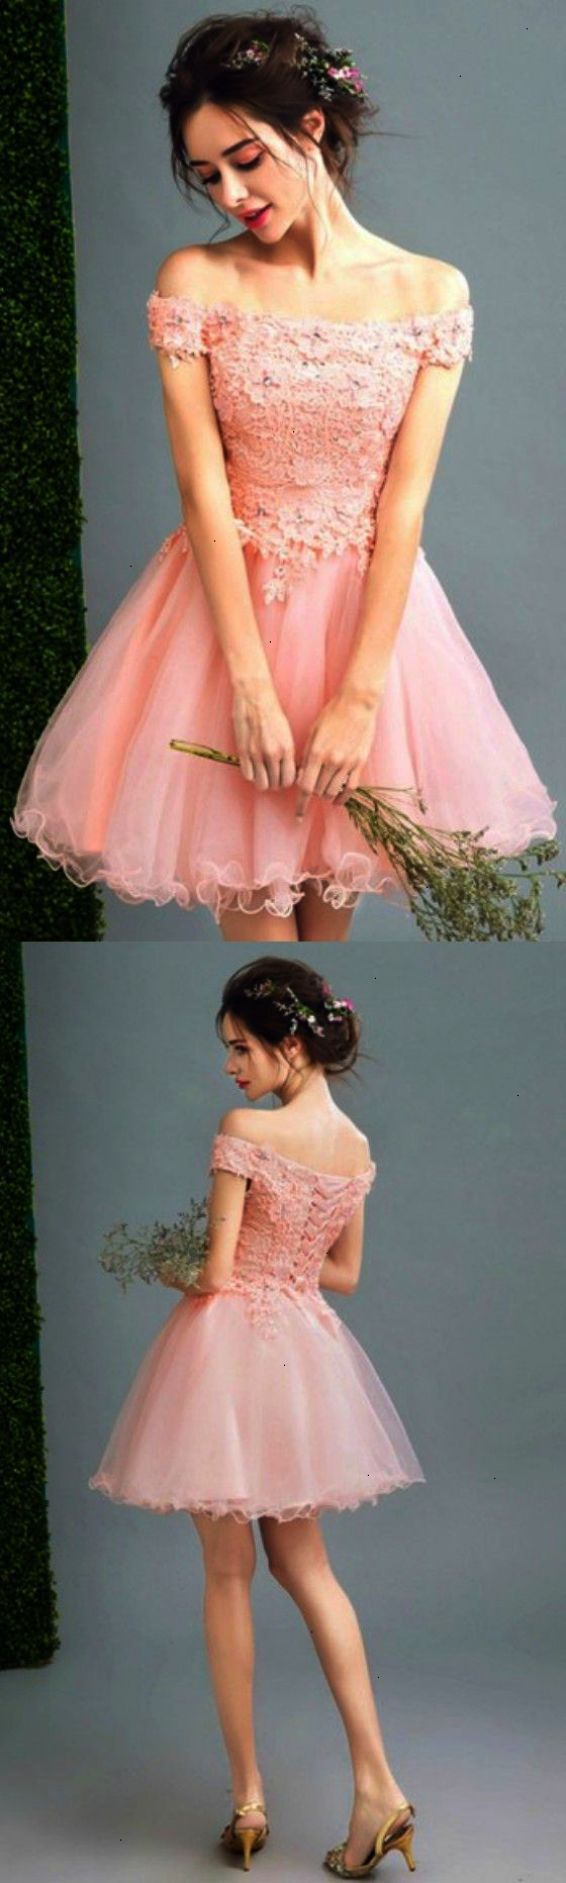 Get this prom dress shops near me xxx top dresses on pinterest